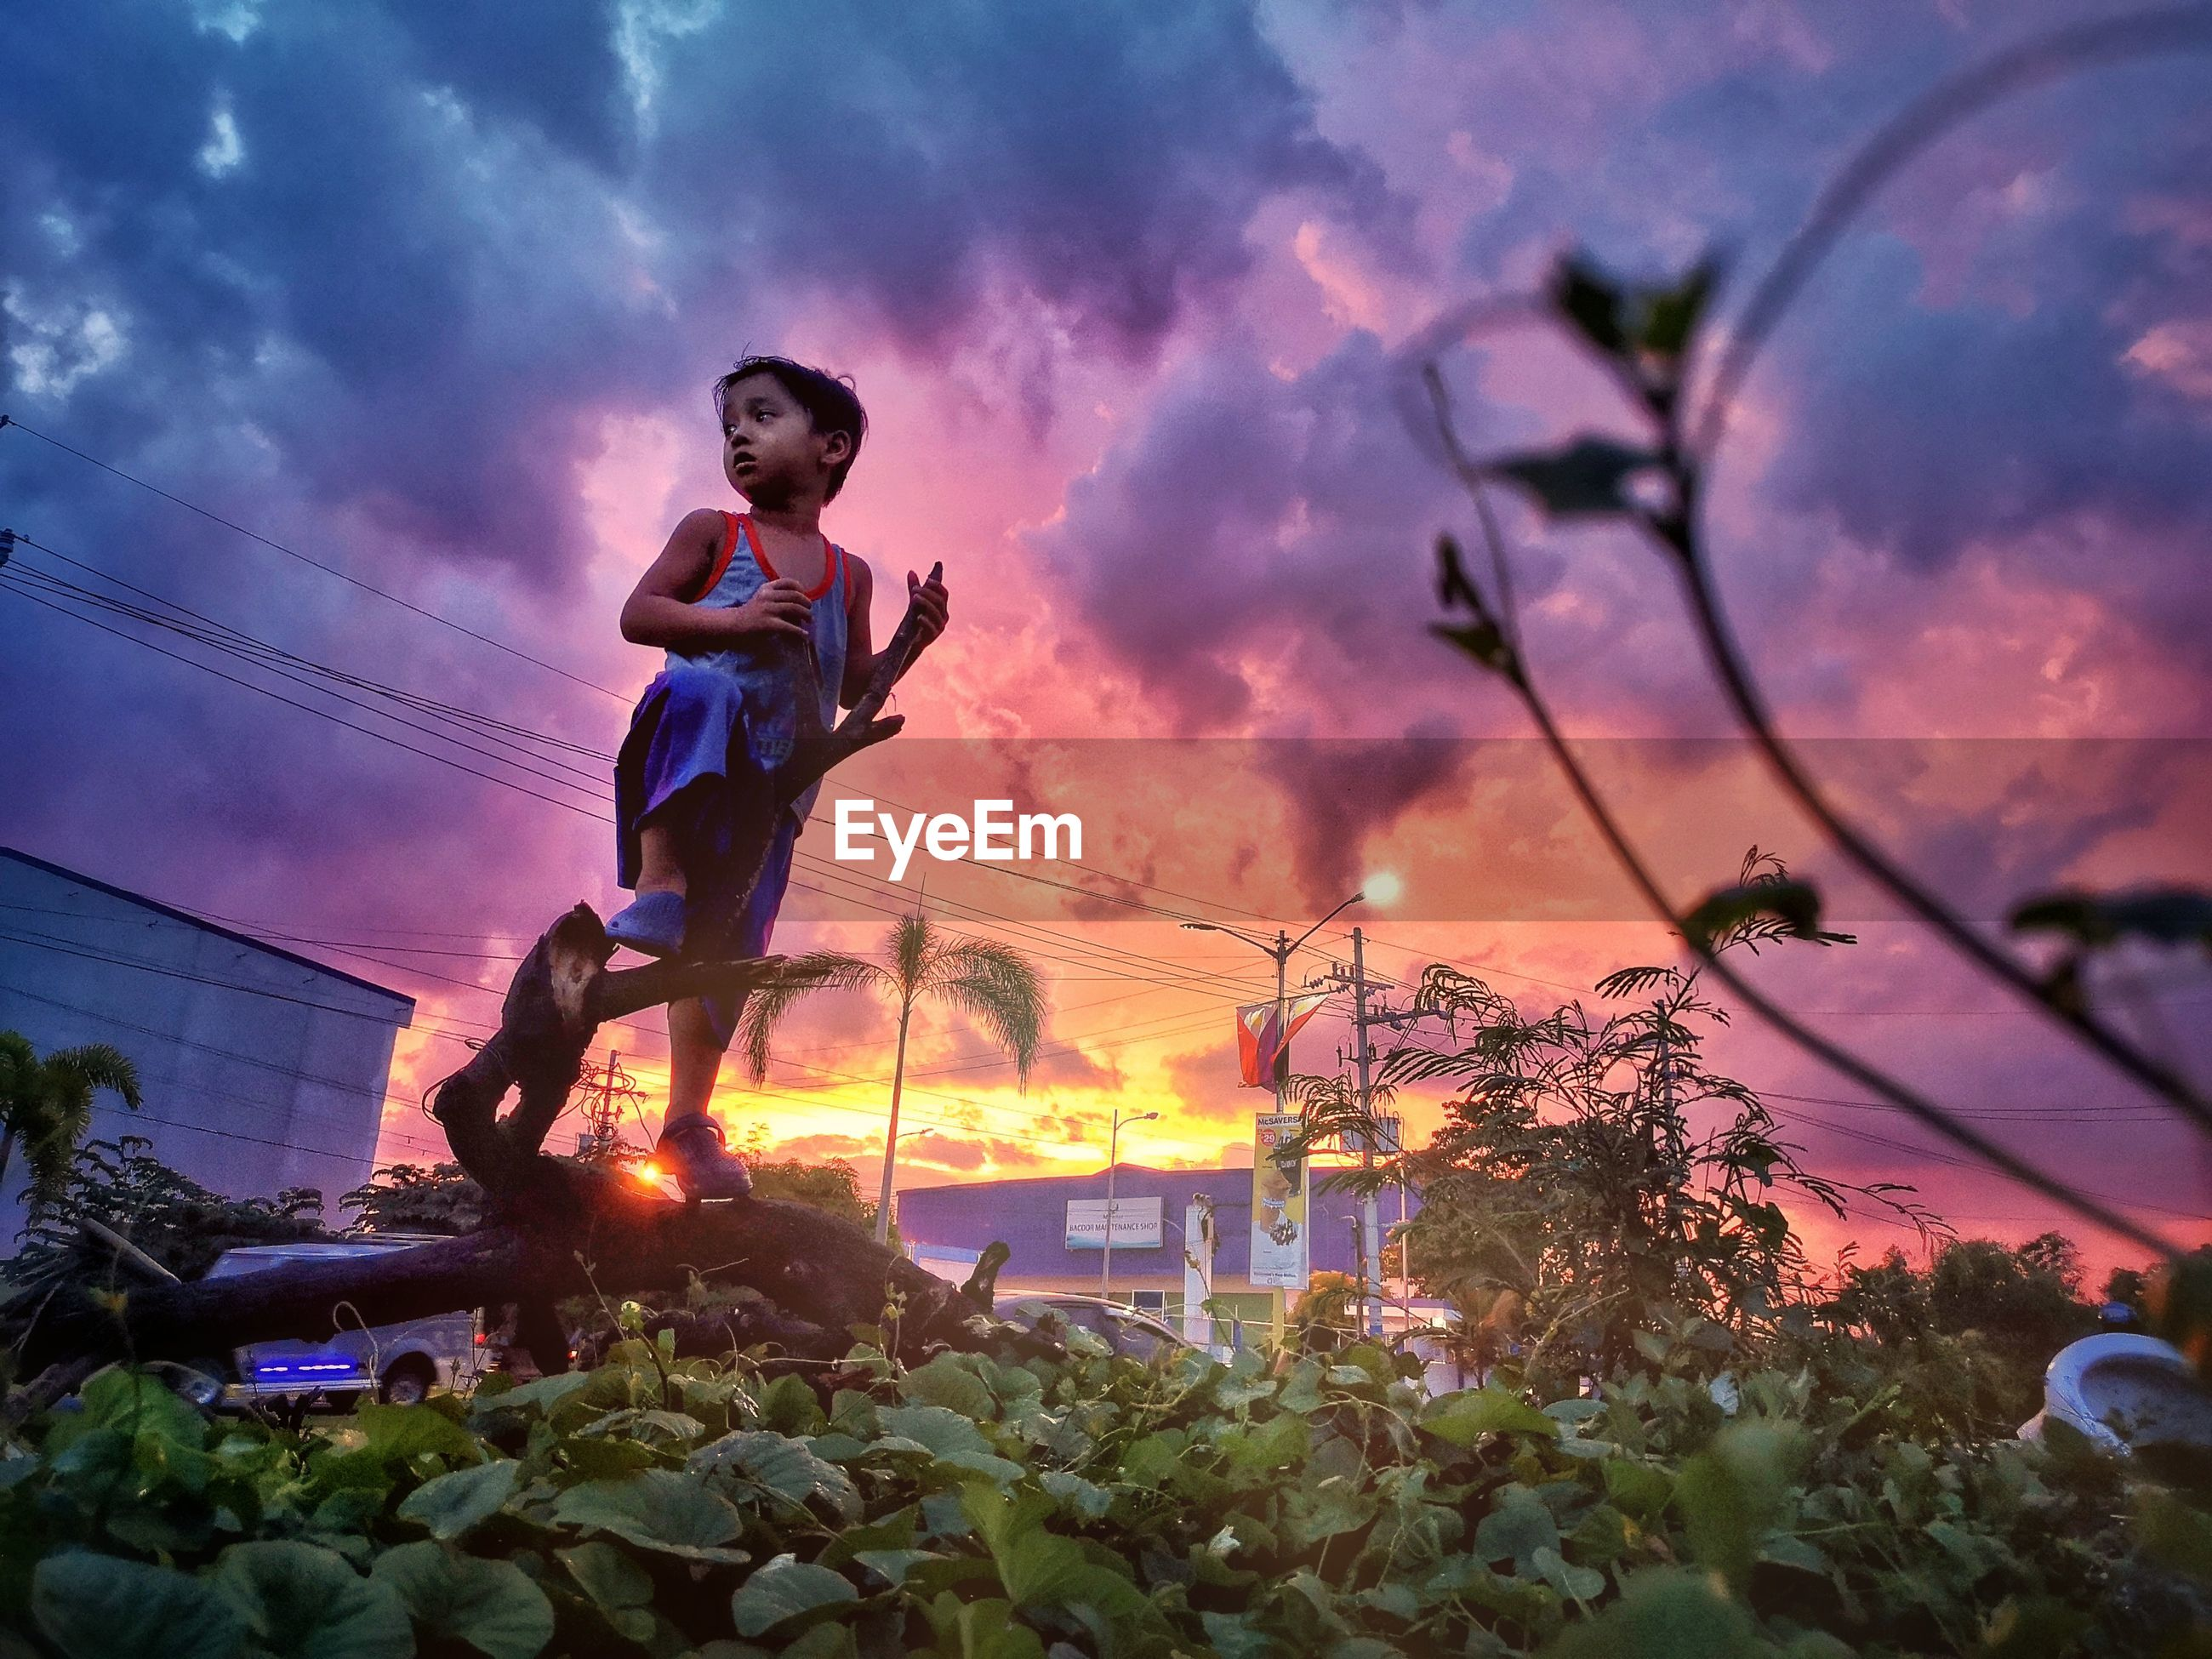 YOUNG MAN AGAINST PURPLE SKY